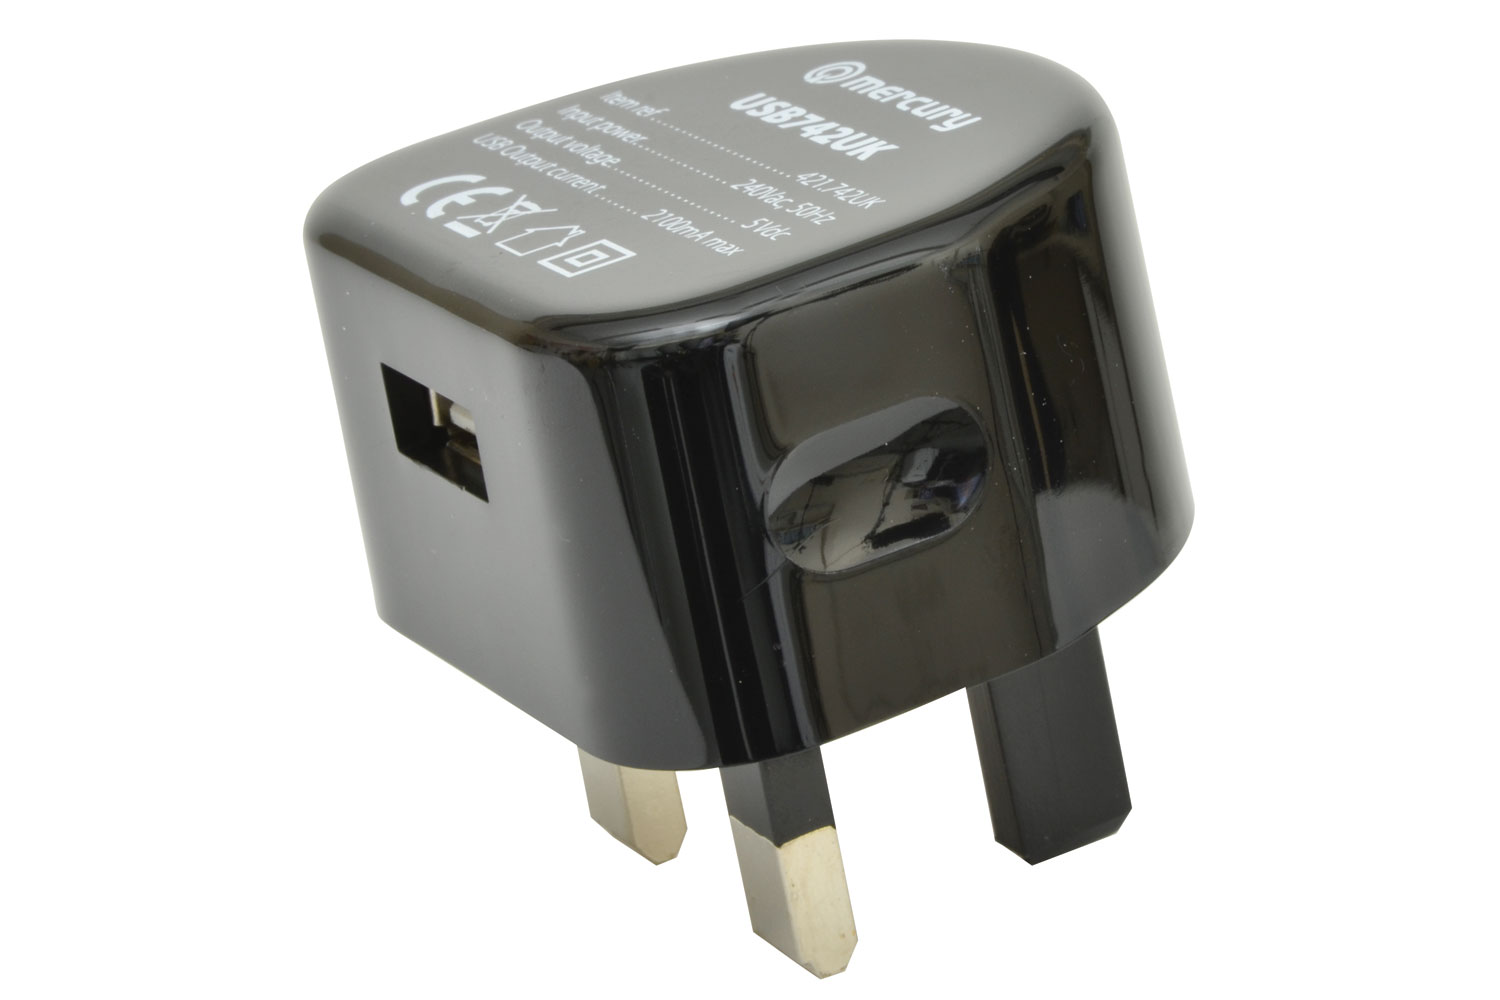 421742 COMPACT USB CHARGER 2100mA Great for All SmartPhones